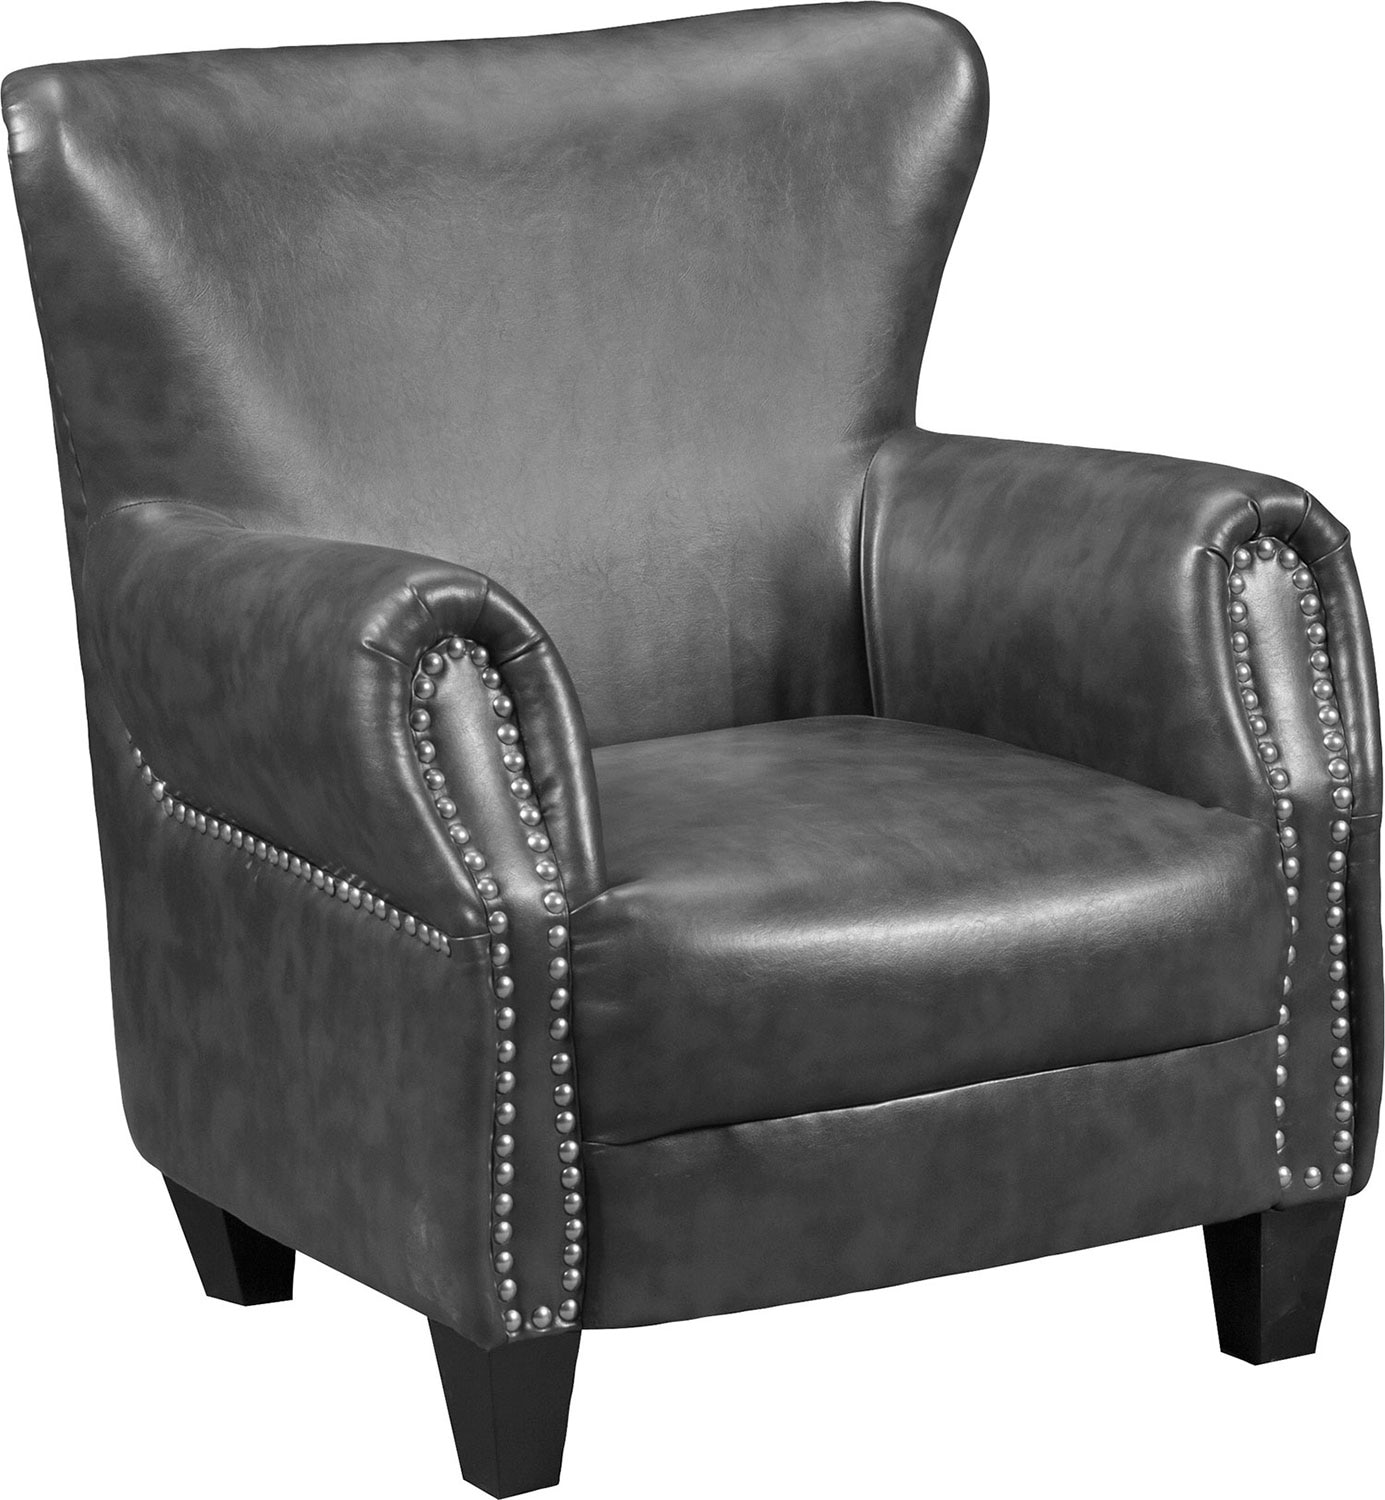 Flint Bonded Leather Accent Chair Grey The Brick